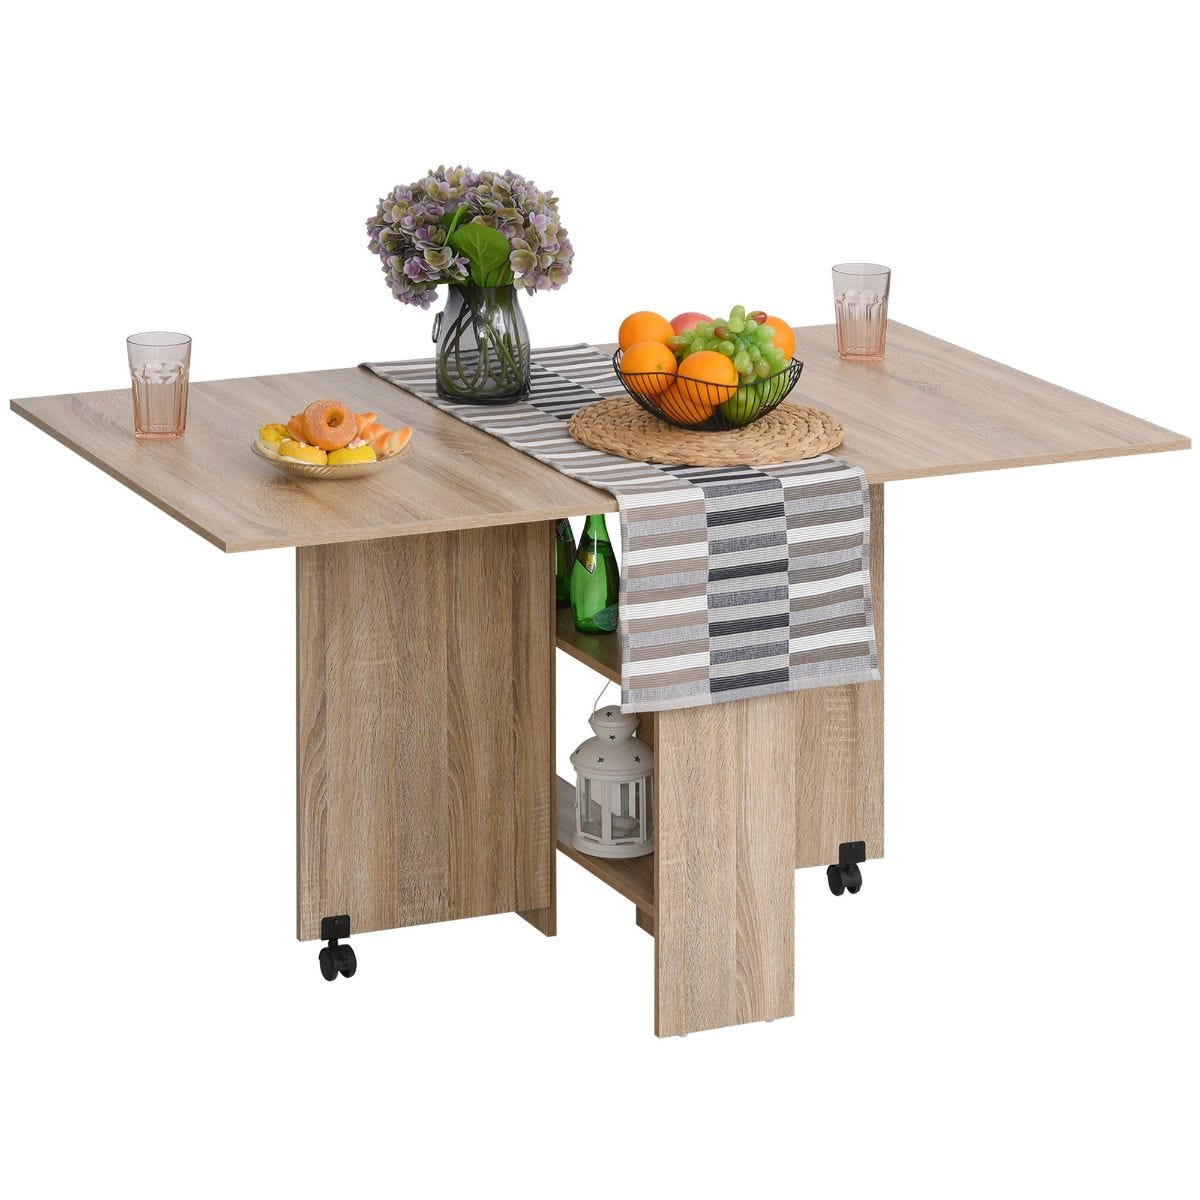 Six Seater Expandable Drop Leaf Dining Table With Wheels Storage Shelf Natural Wood Effect